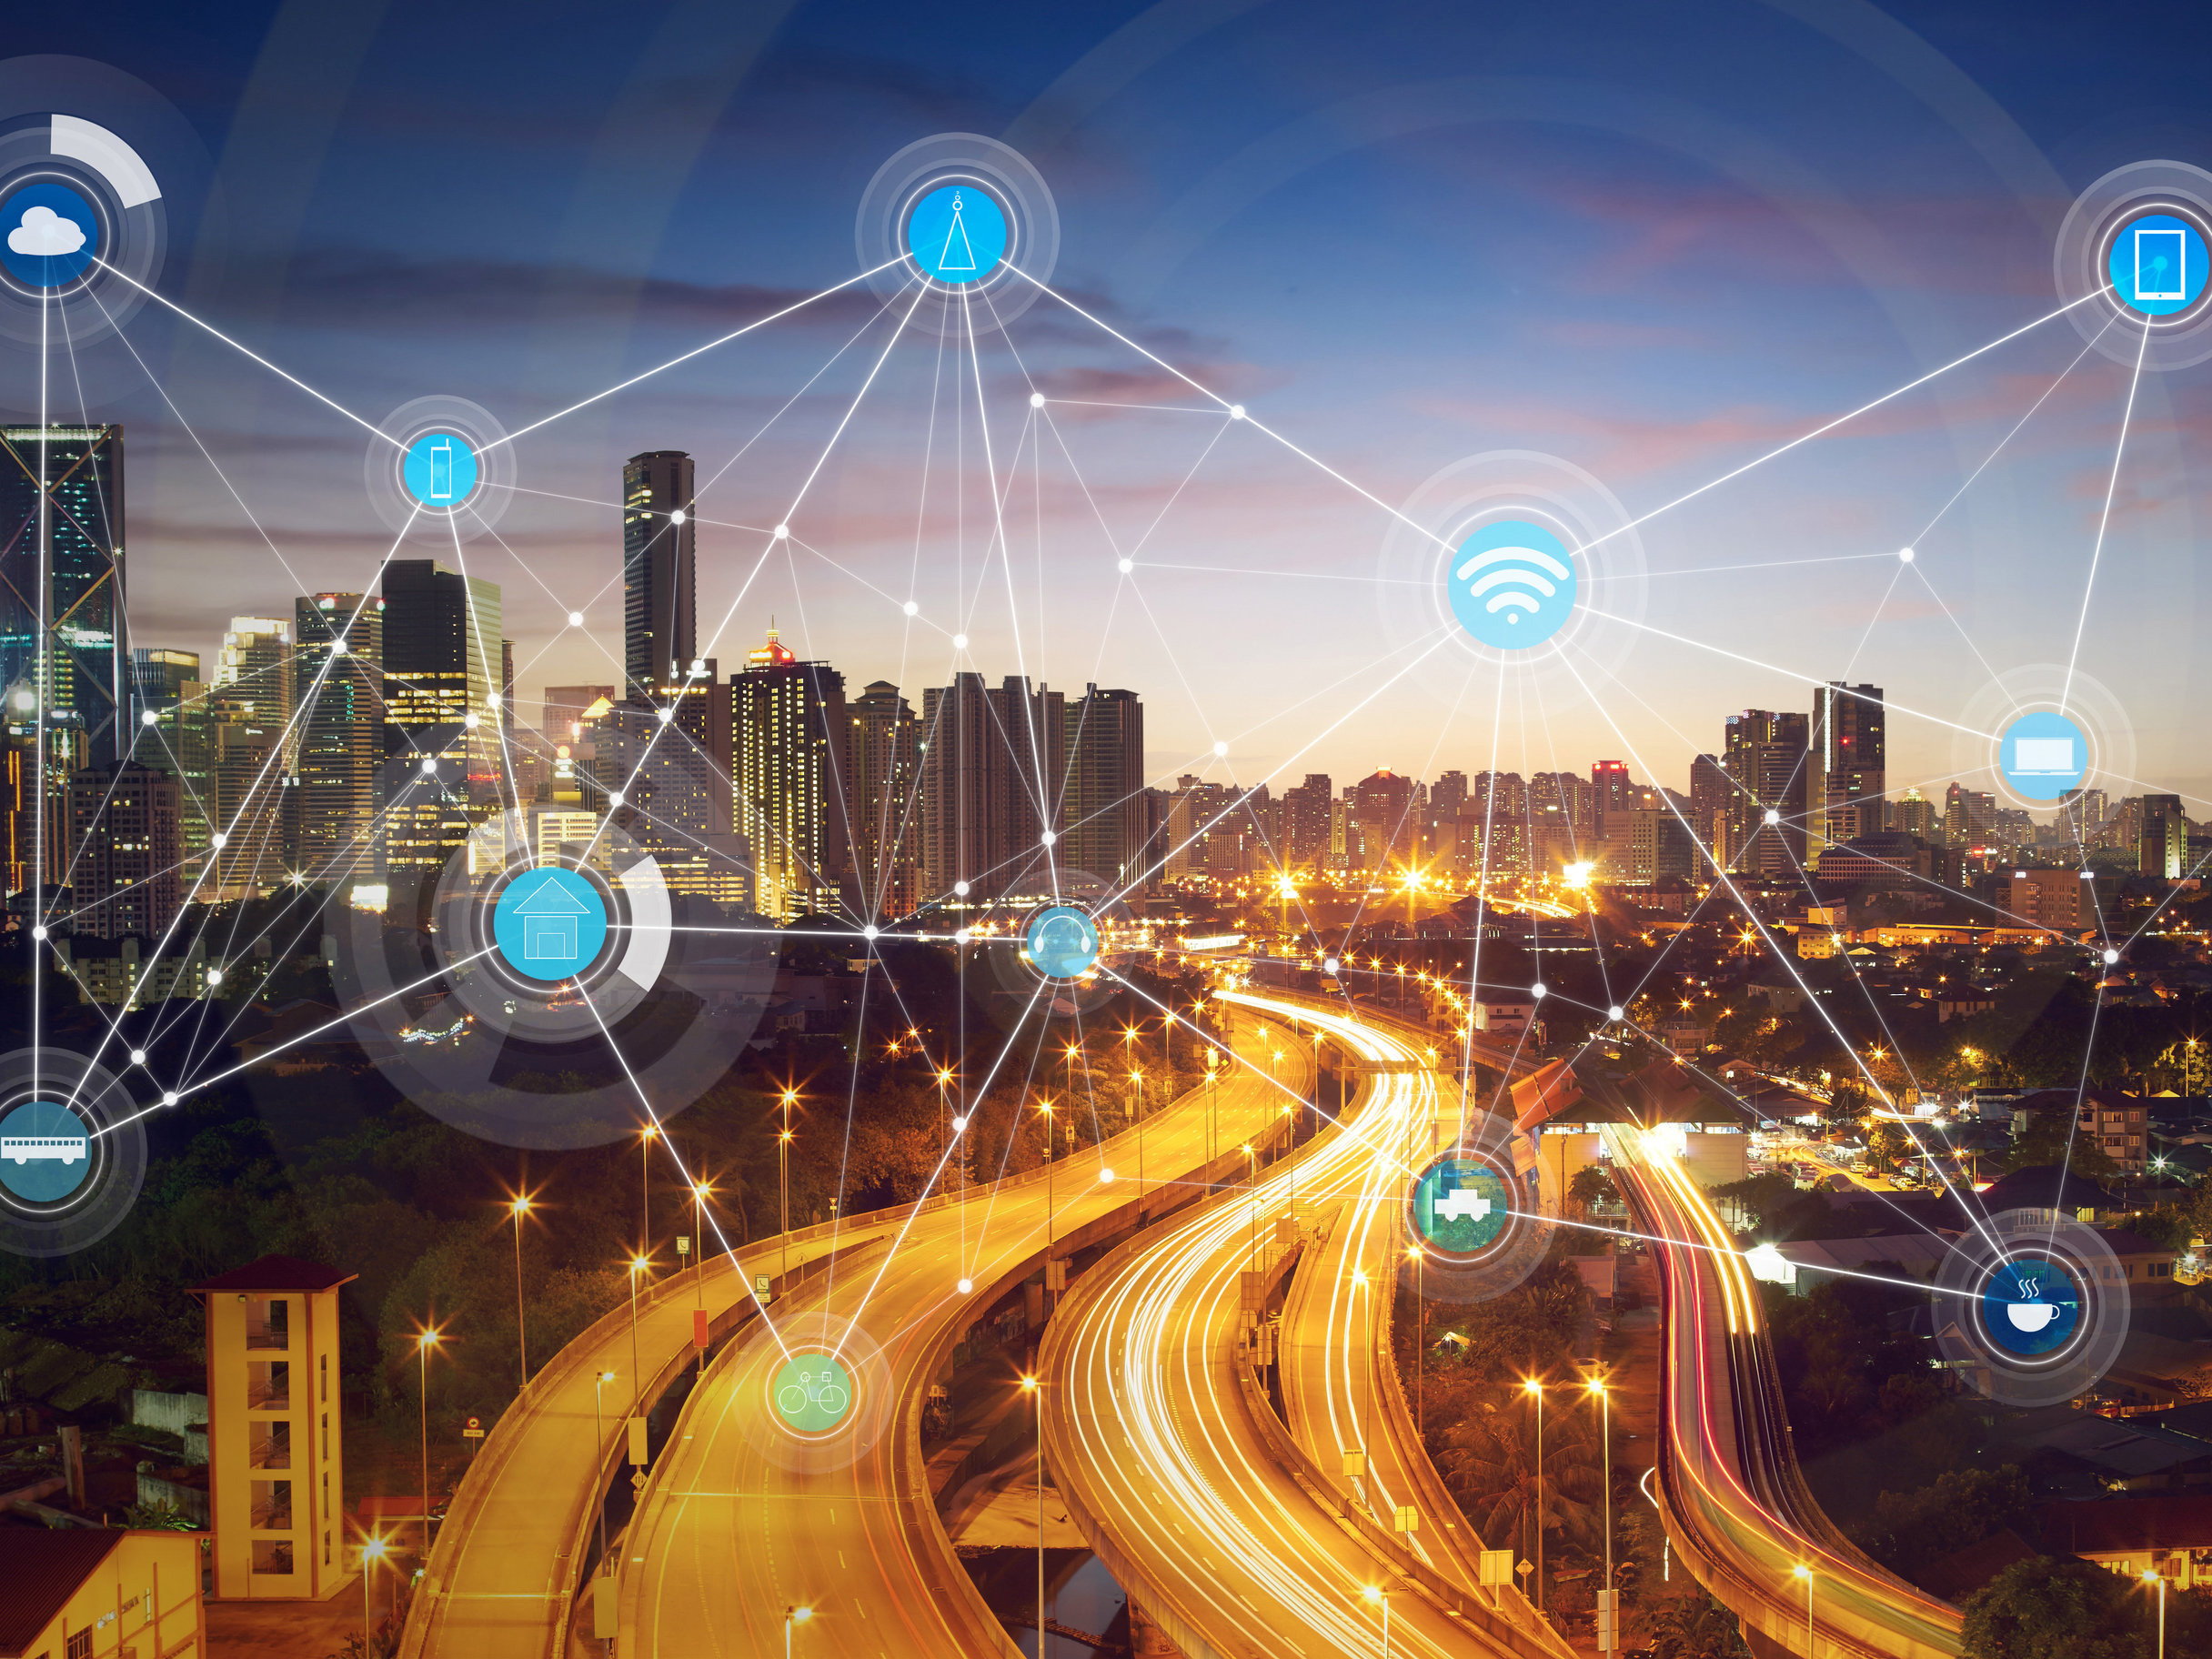 A smart city is usually one connected and managed through computing — sensors, data analytics and other information and communications technology. Image: Shutterstock